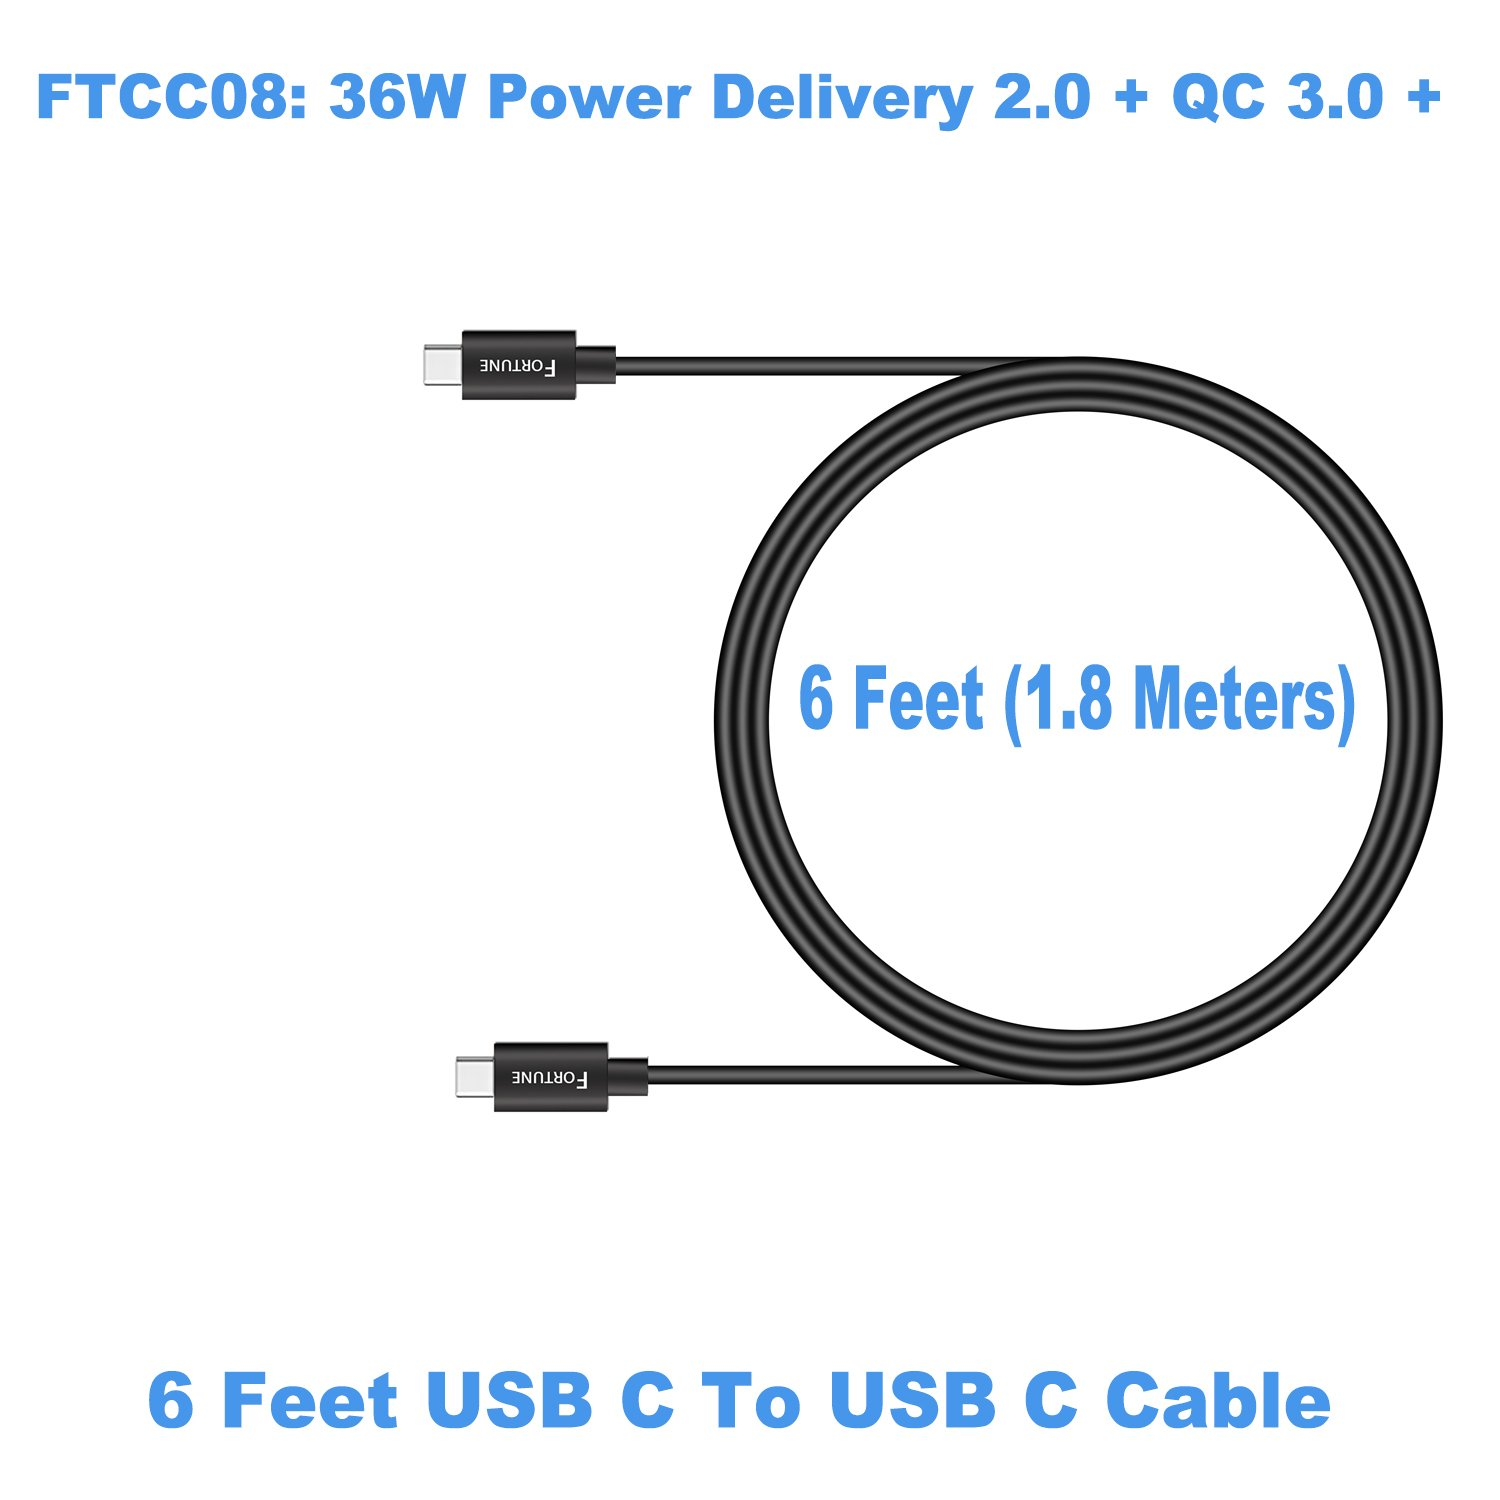 Samsung Galaxy S9 Car Charger USB C Car Charger with Power Delivery 2.0 /& Quick Charge 3.0 Ports /& 6ft USB C Cable Works for Galaxy S8 Note 8 Pixel 2//XL Moto Z2 LG V30 Fortune Group 43237-26529 Samsung Galaxy S8 Car Charger